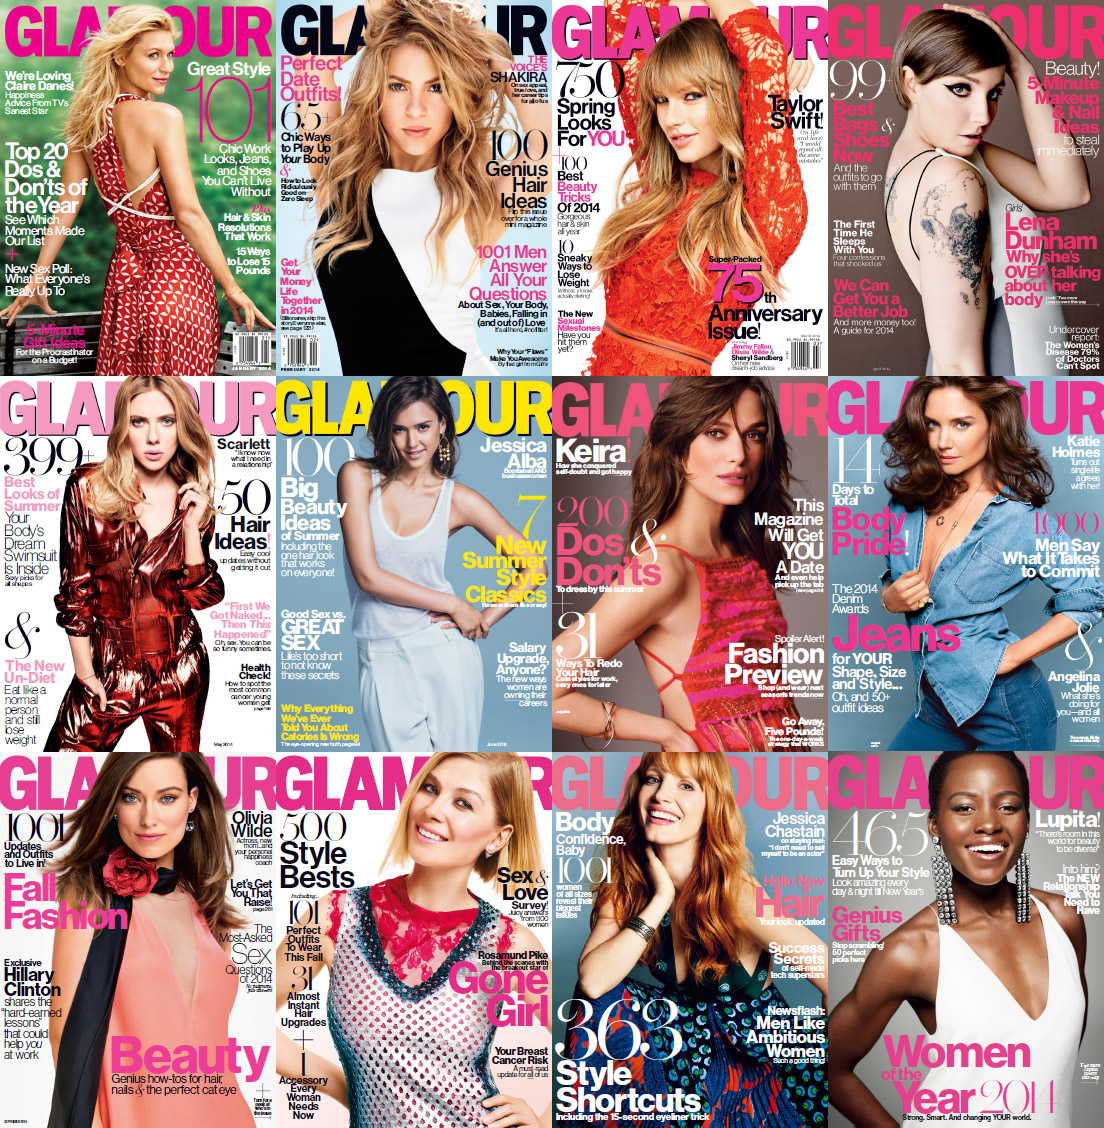 Glamour USA Magazine - Full Year 2014 Issues Collection free download